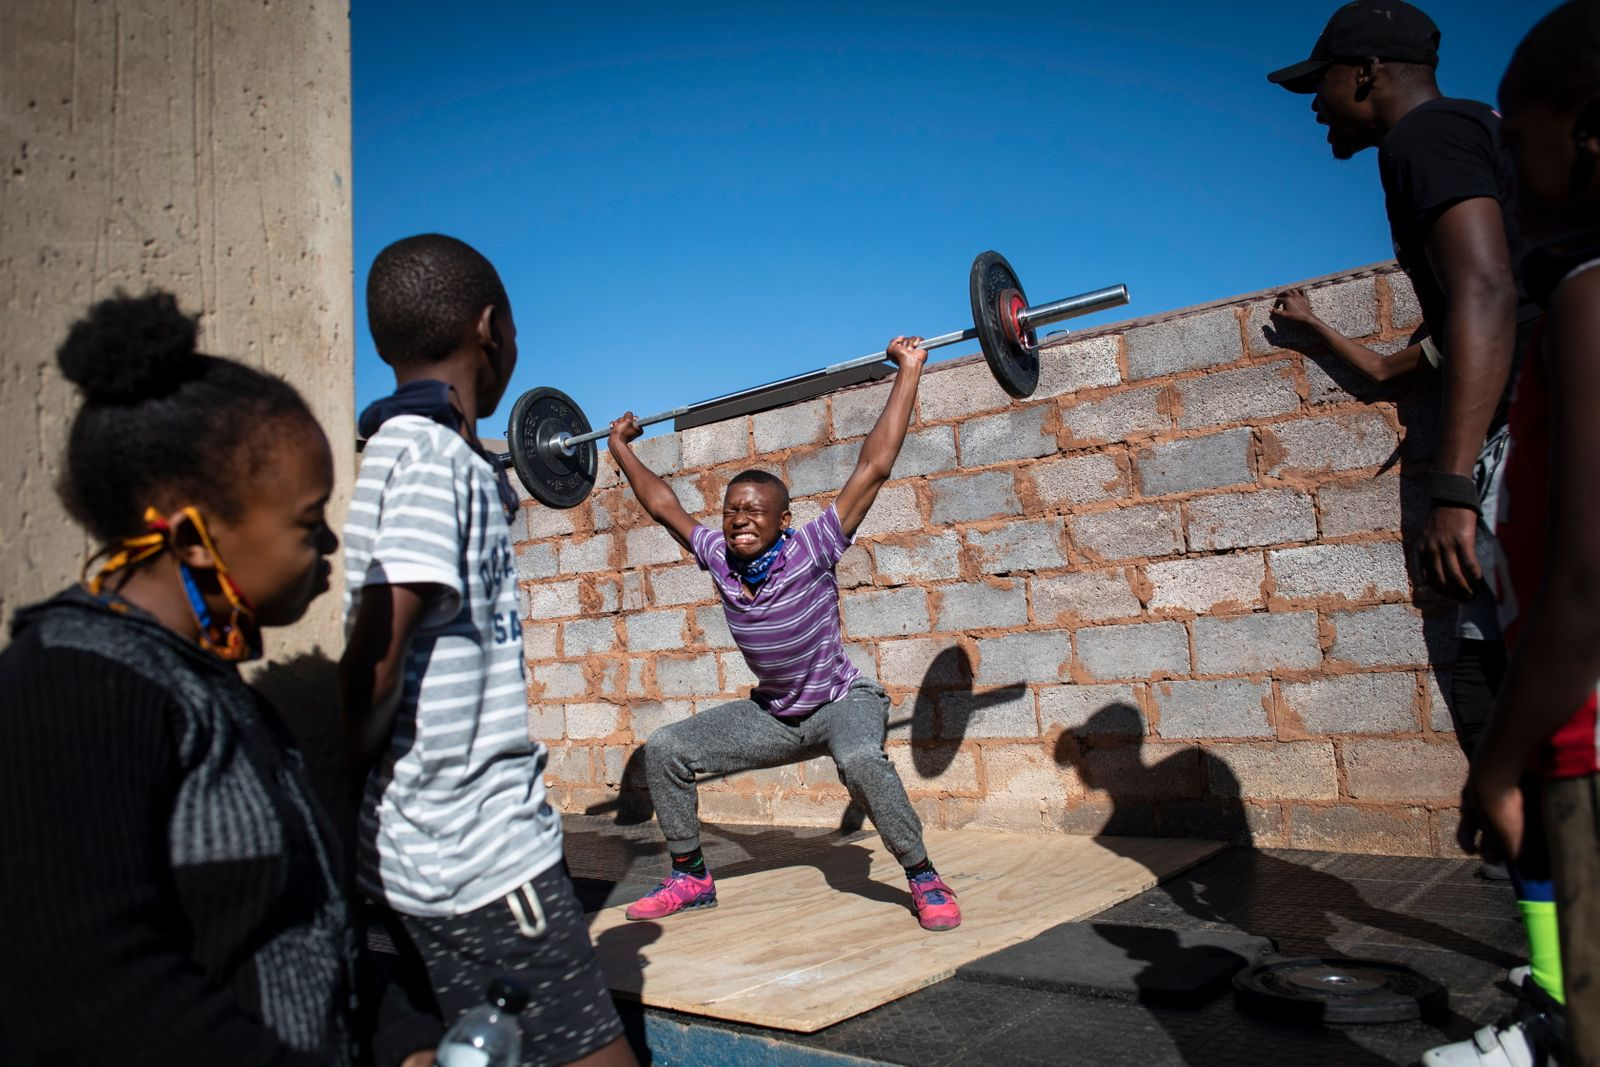 South Africa weight lifting uplifts community